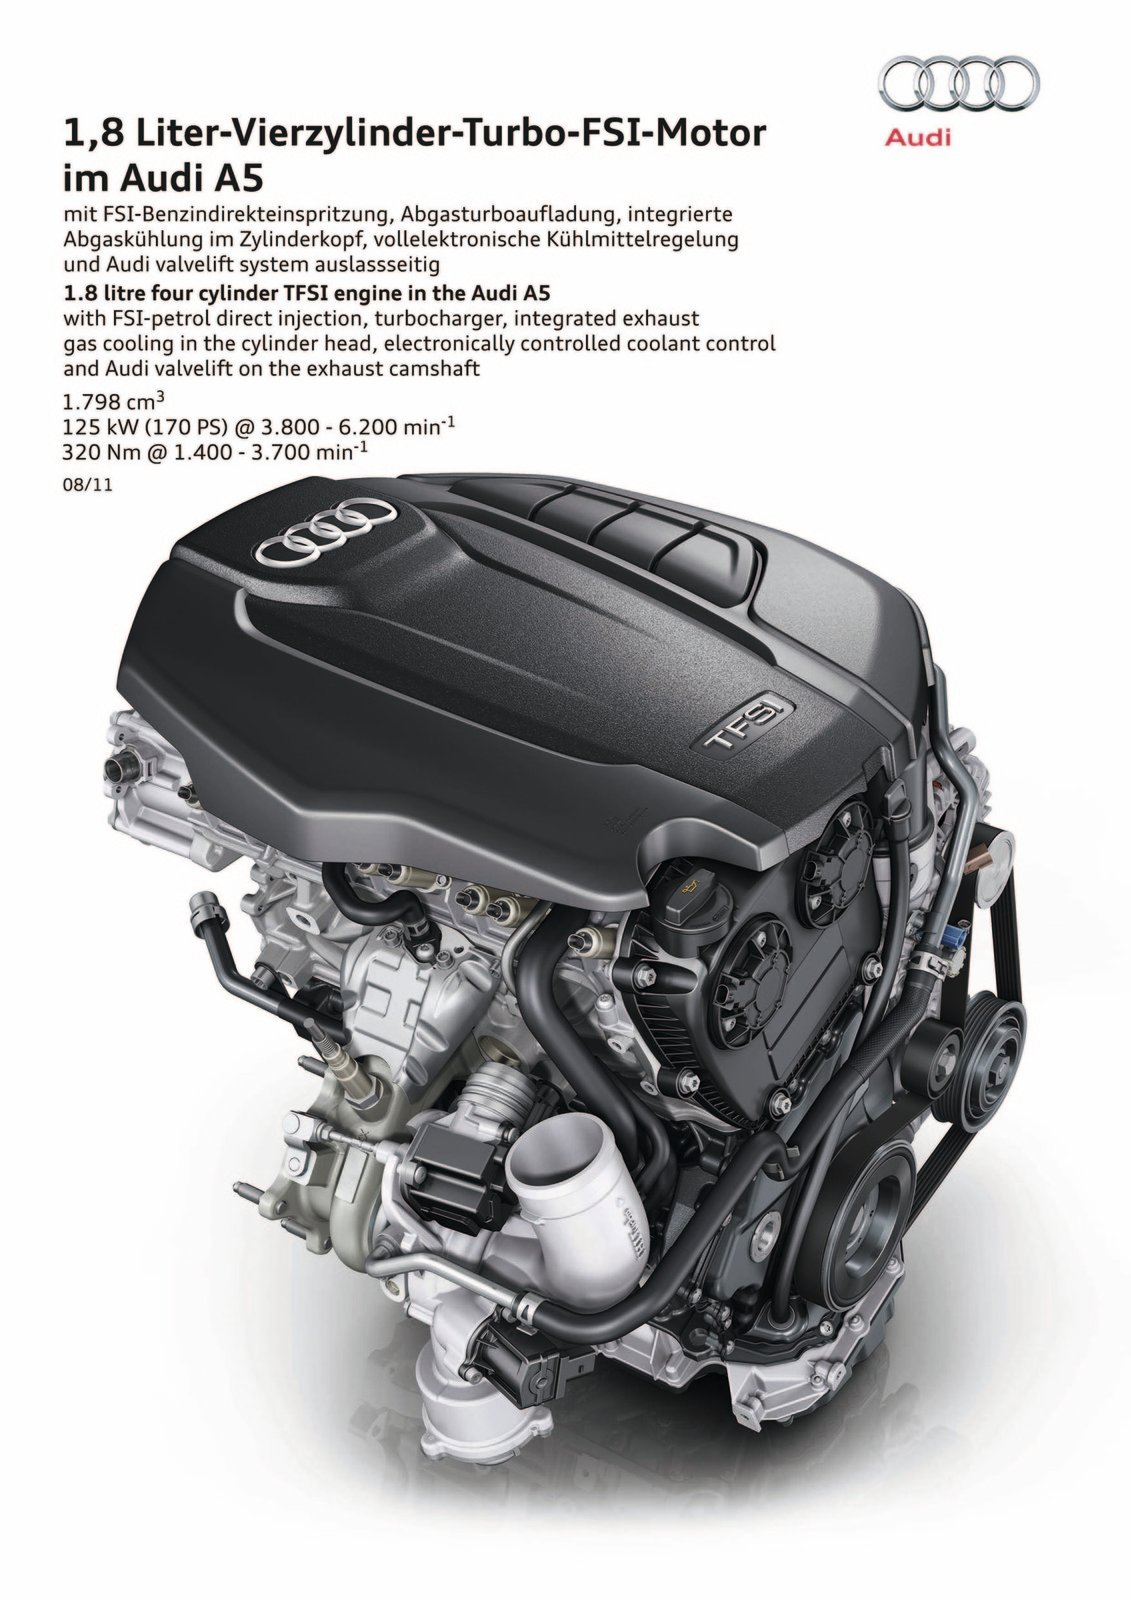 40 Mpg And 170 Bhp Audi Engine Offers Frugality And Fun